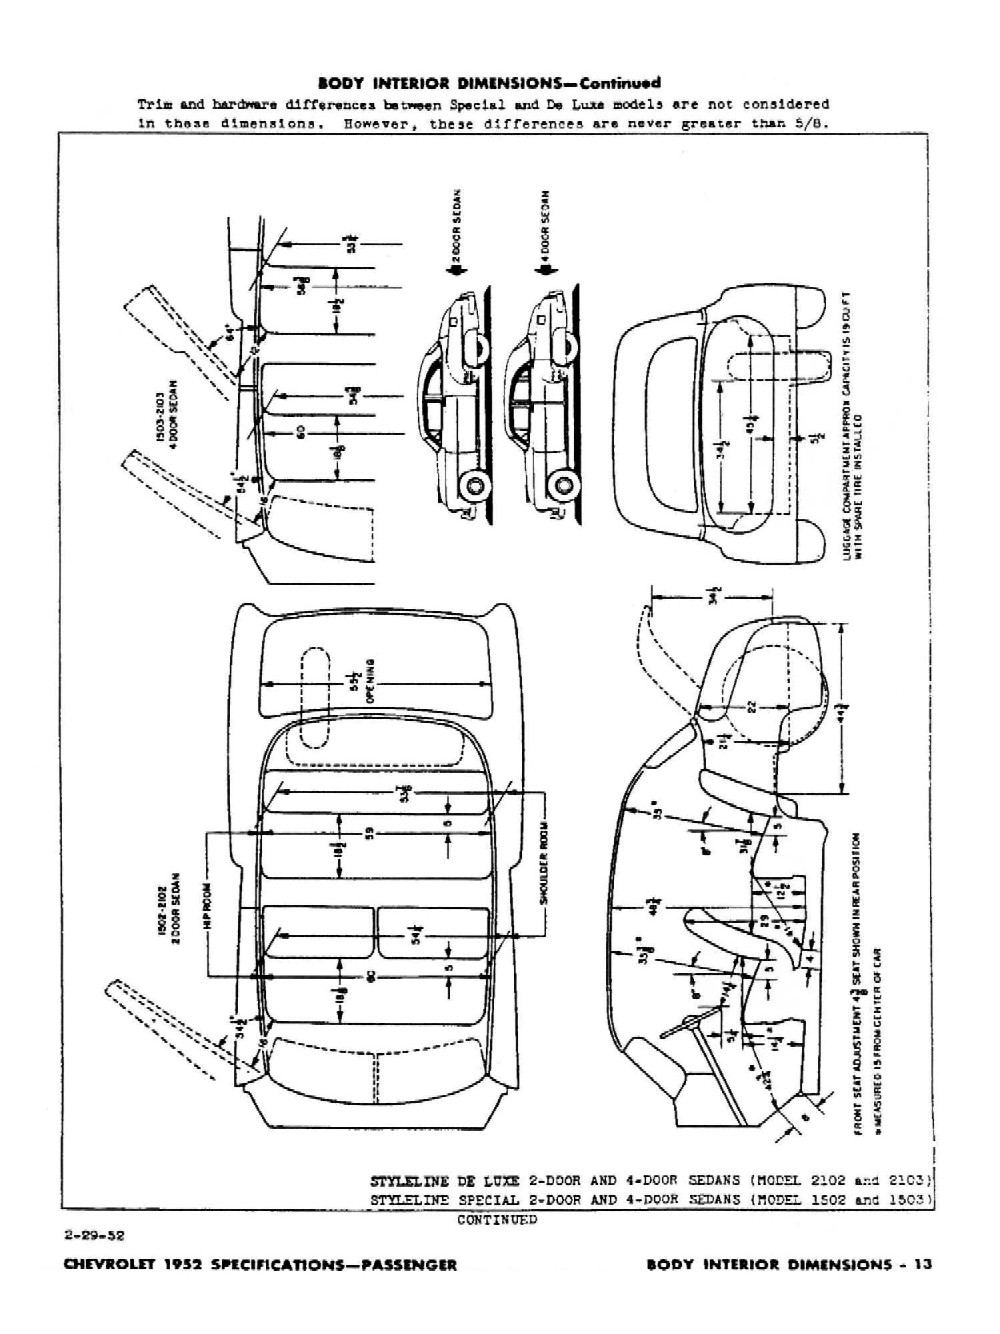 1952 Chevrolet Specifications Pack